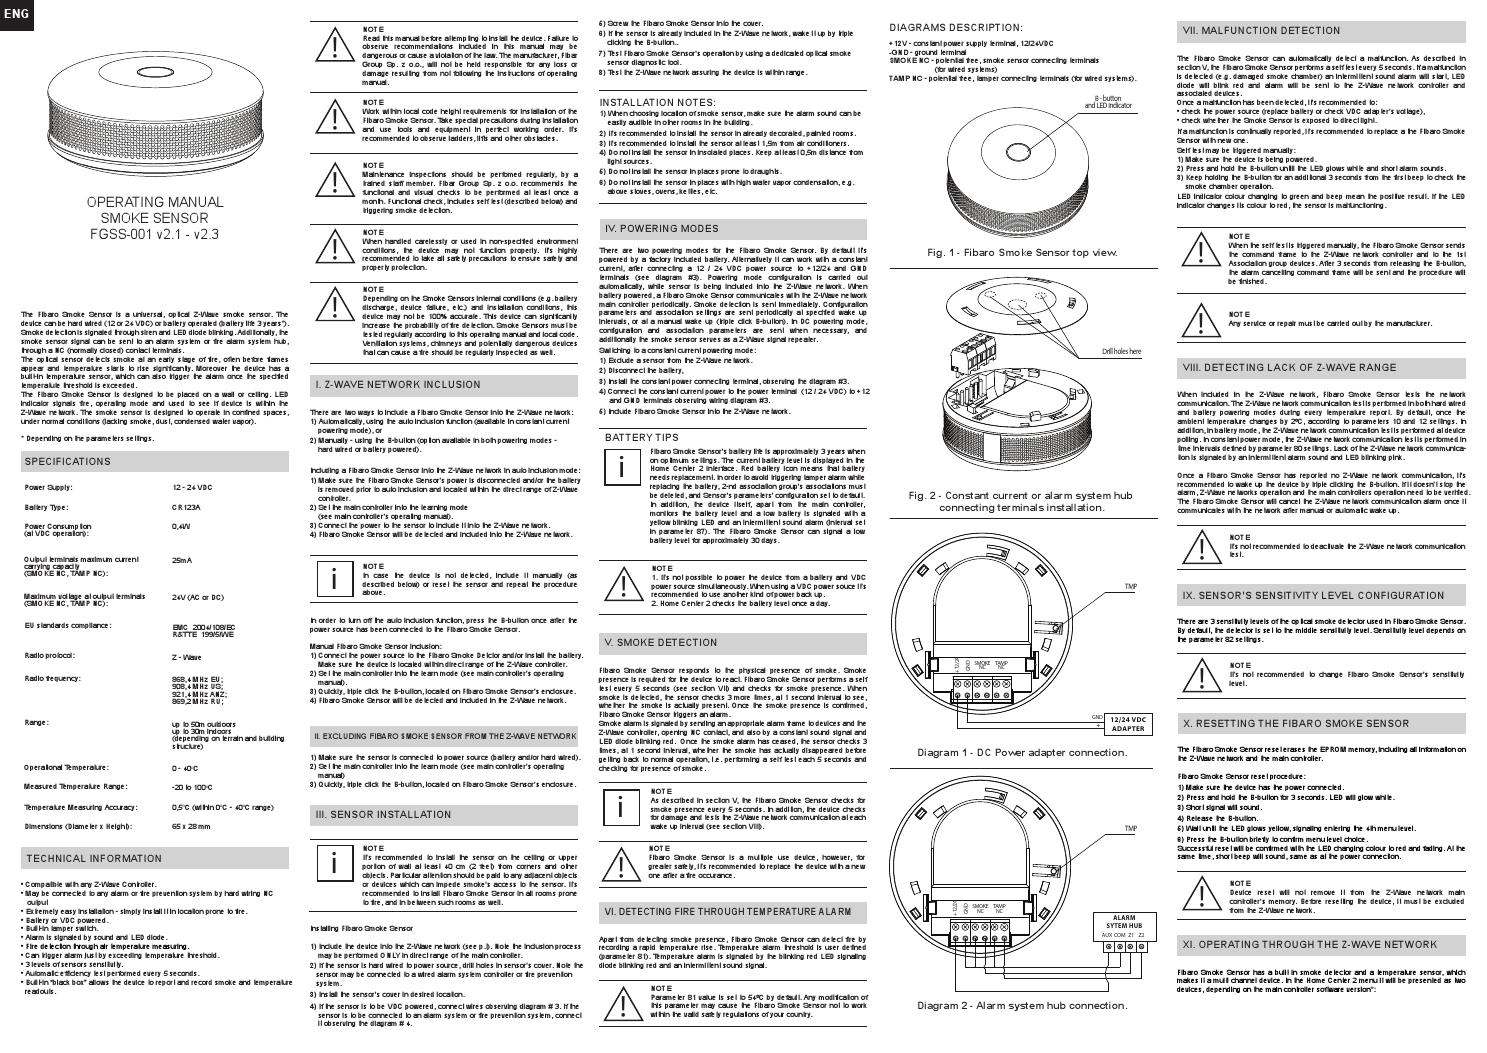 Discussion T16778 ds656015 likewise William Sound Neckloop further 1 in addition Whole Home Audio Wiring Diagram as well Morgancityut. on smoke alarm sound